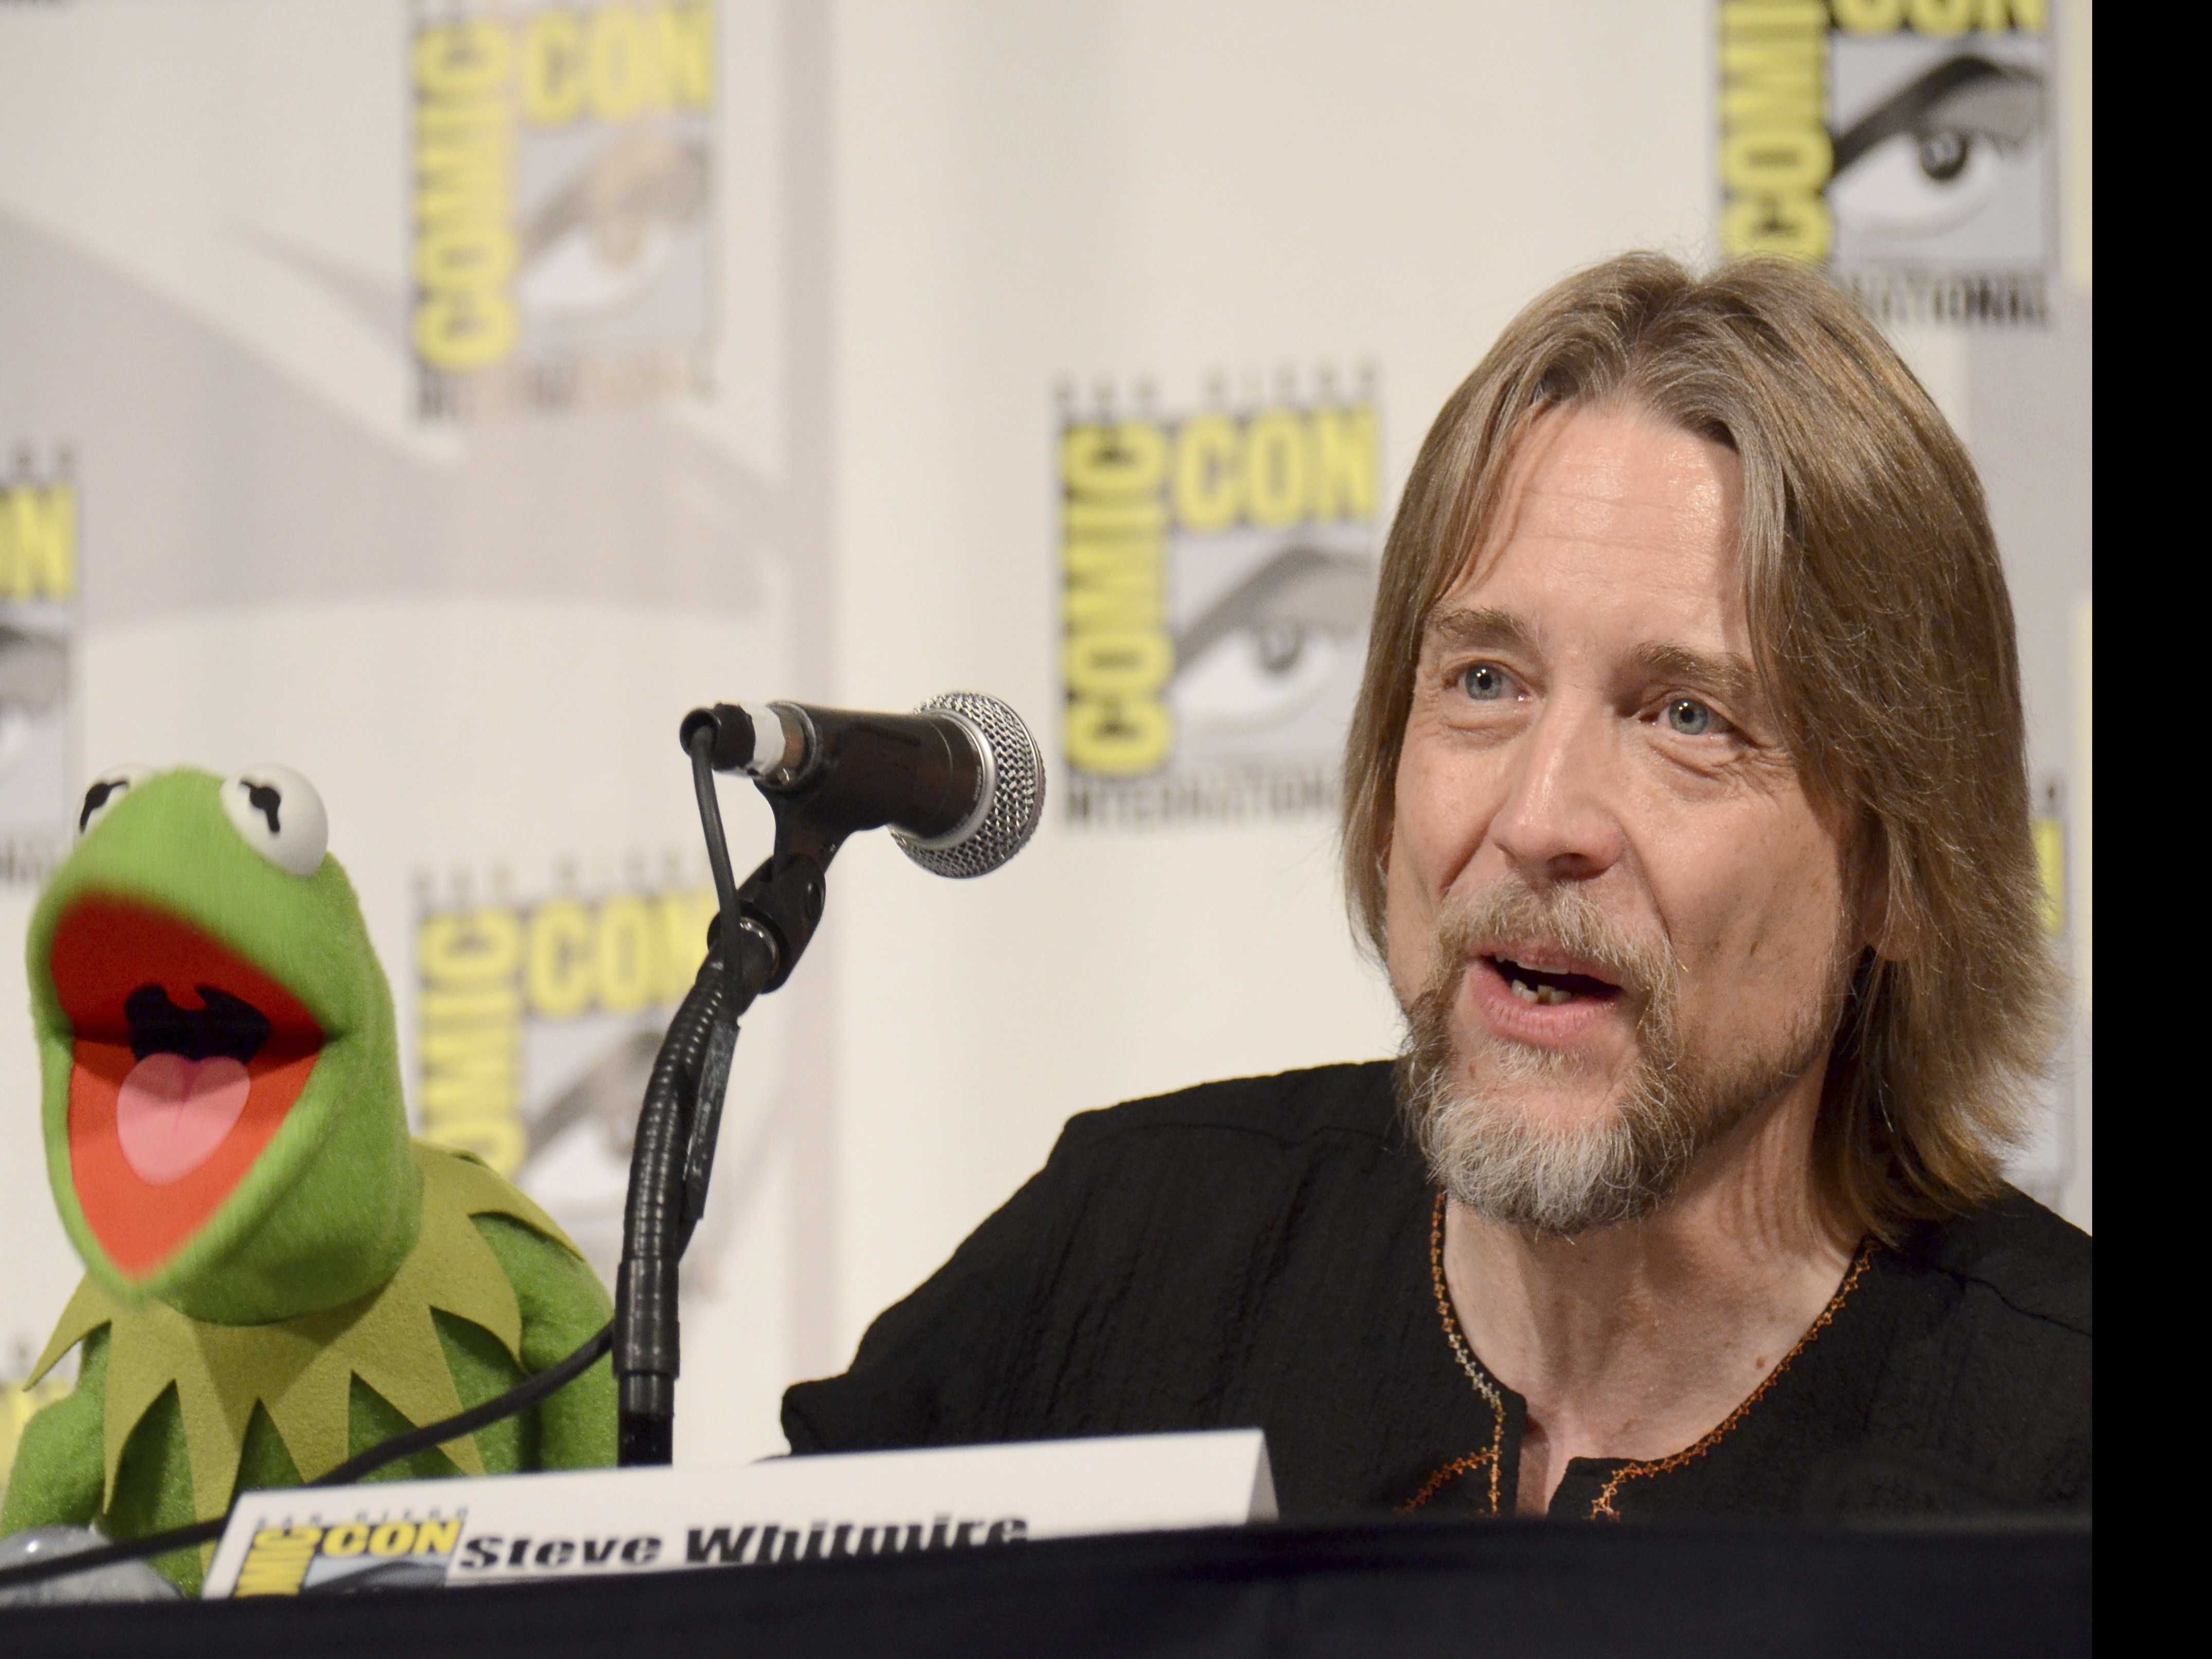 Kermit the Frog Will Have a New Voice After Actor Steps Down